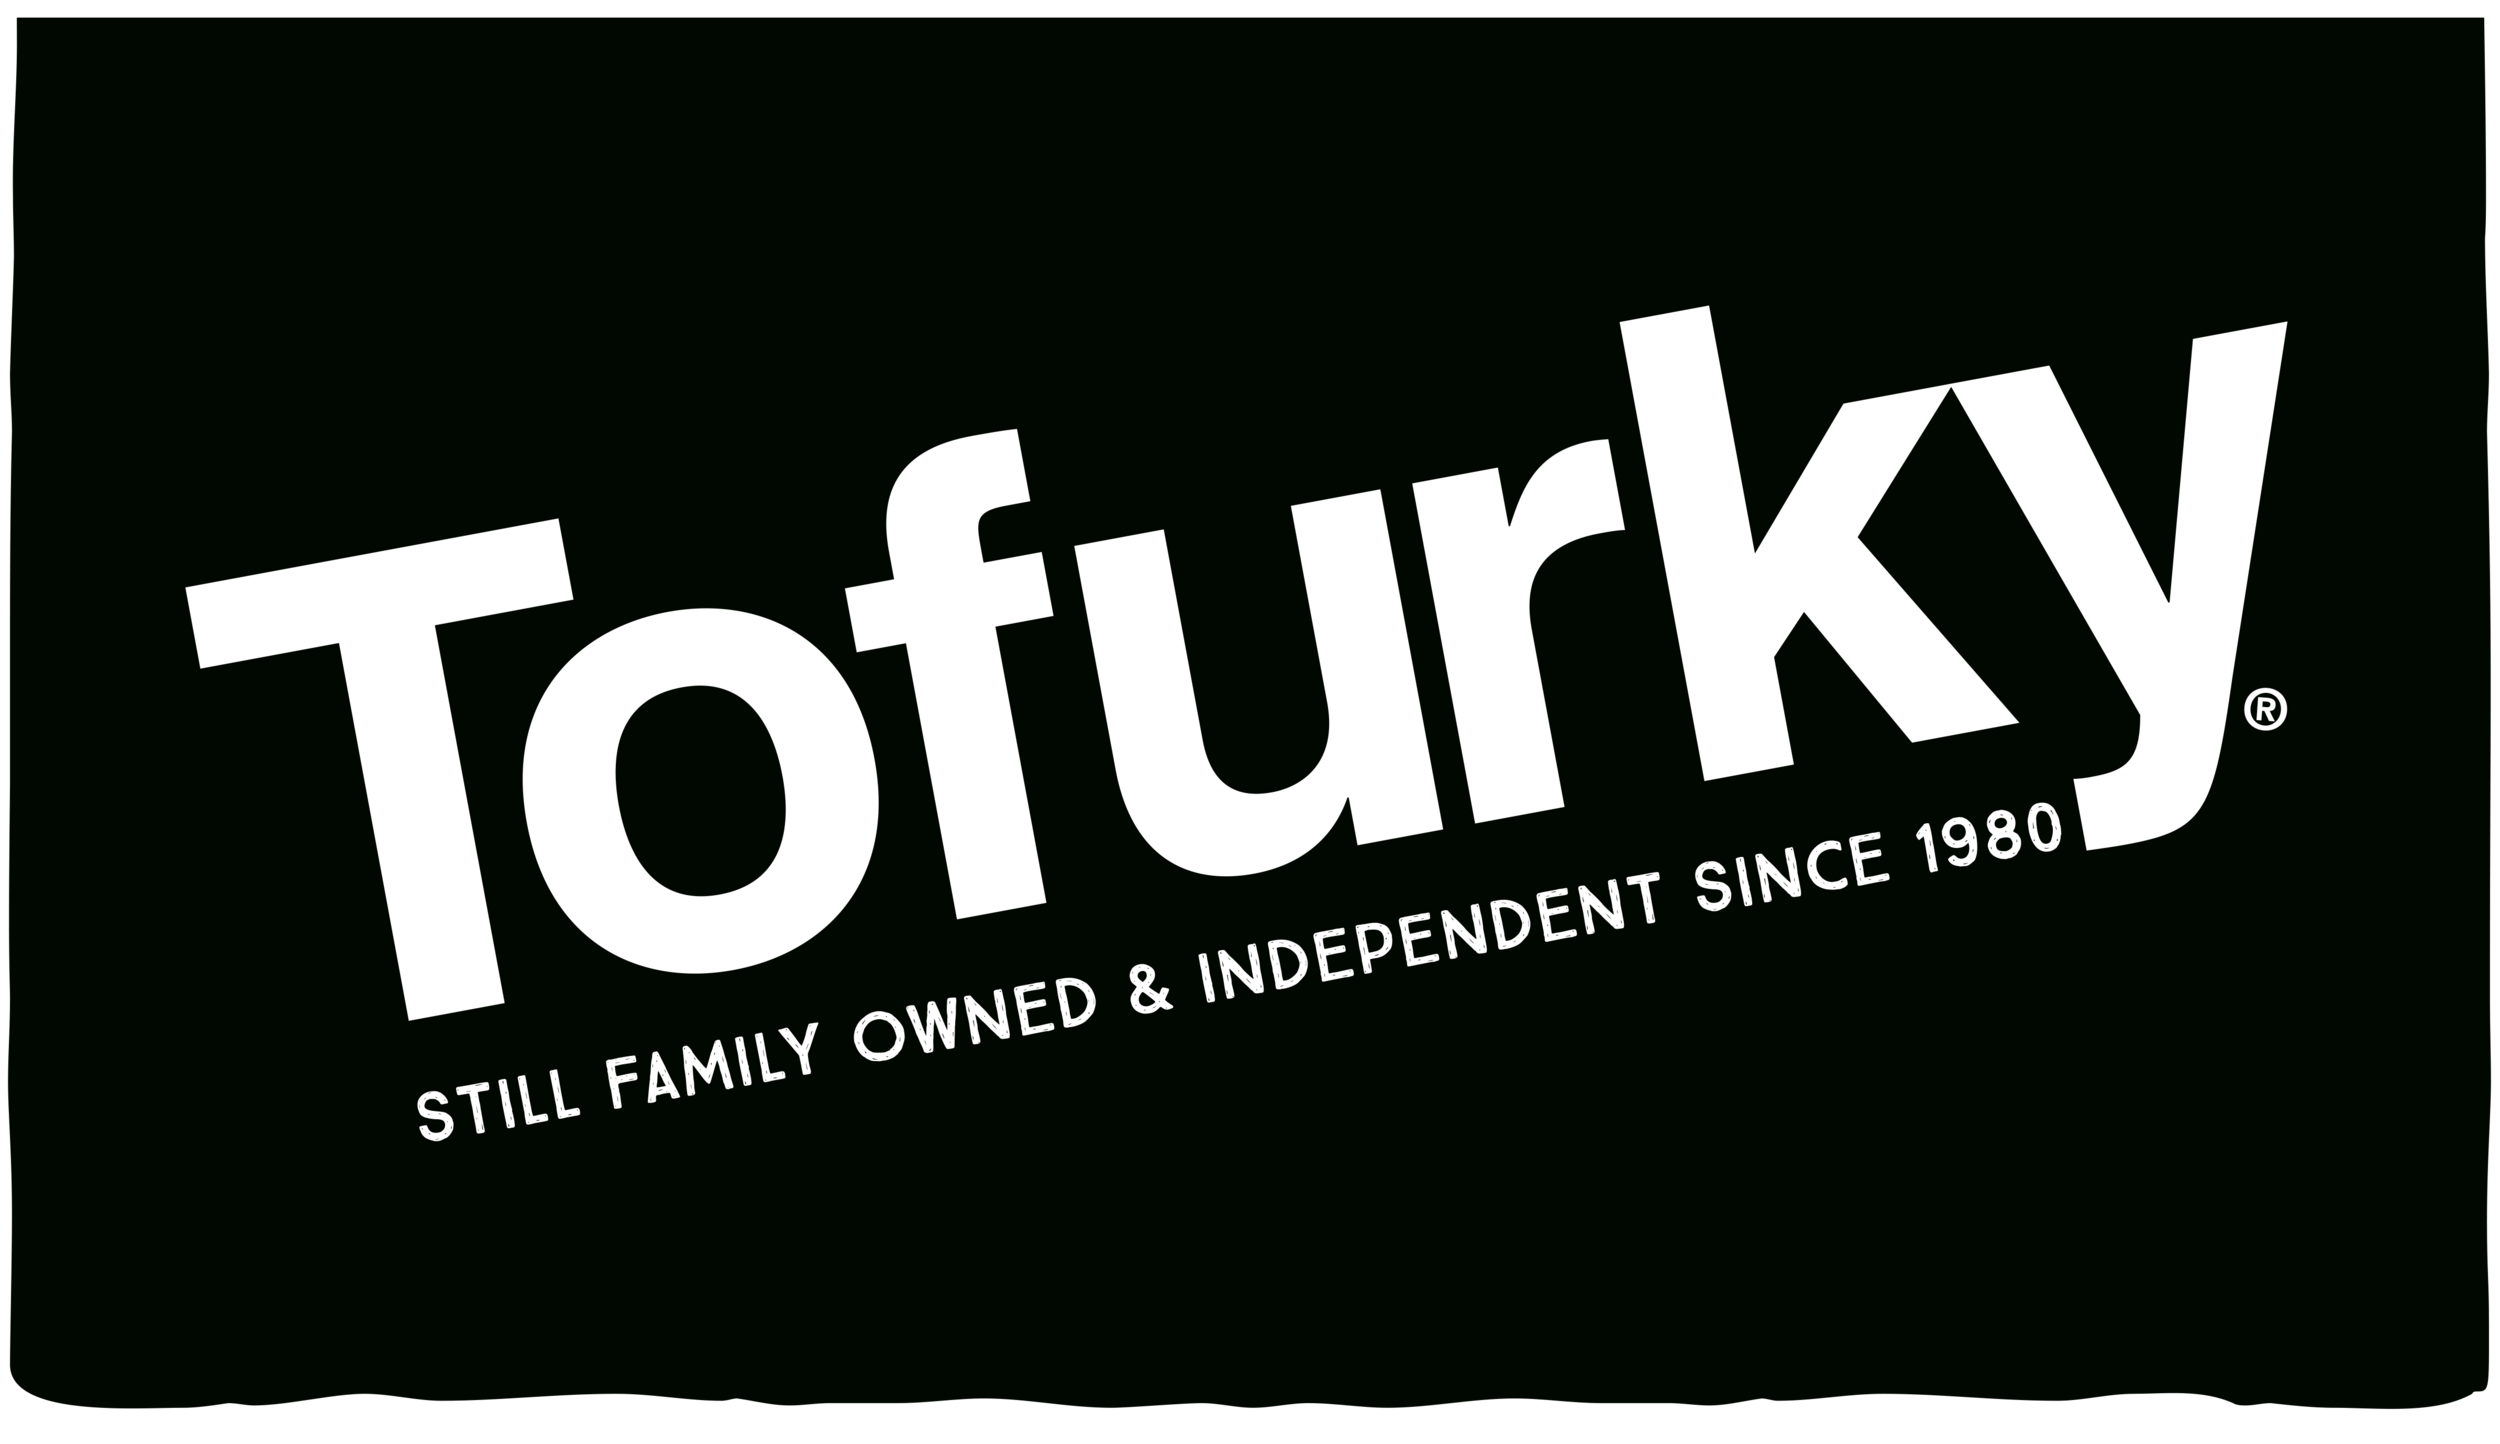 Happiness is when the food we want to eat, the food we should eat, and the food we do eat are one and the same. It's kind to people, animals, the environment, and especially taste buds. That's exactly the kind of food we've been making at  Tofurky  for more than 35 years.